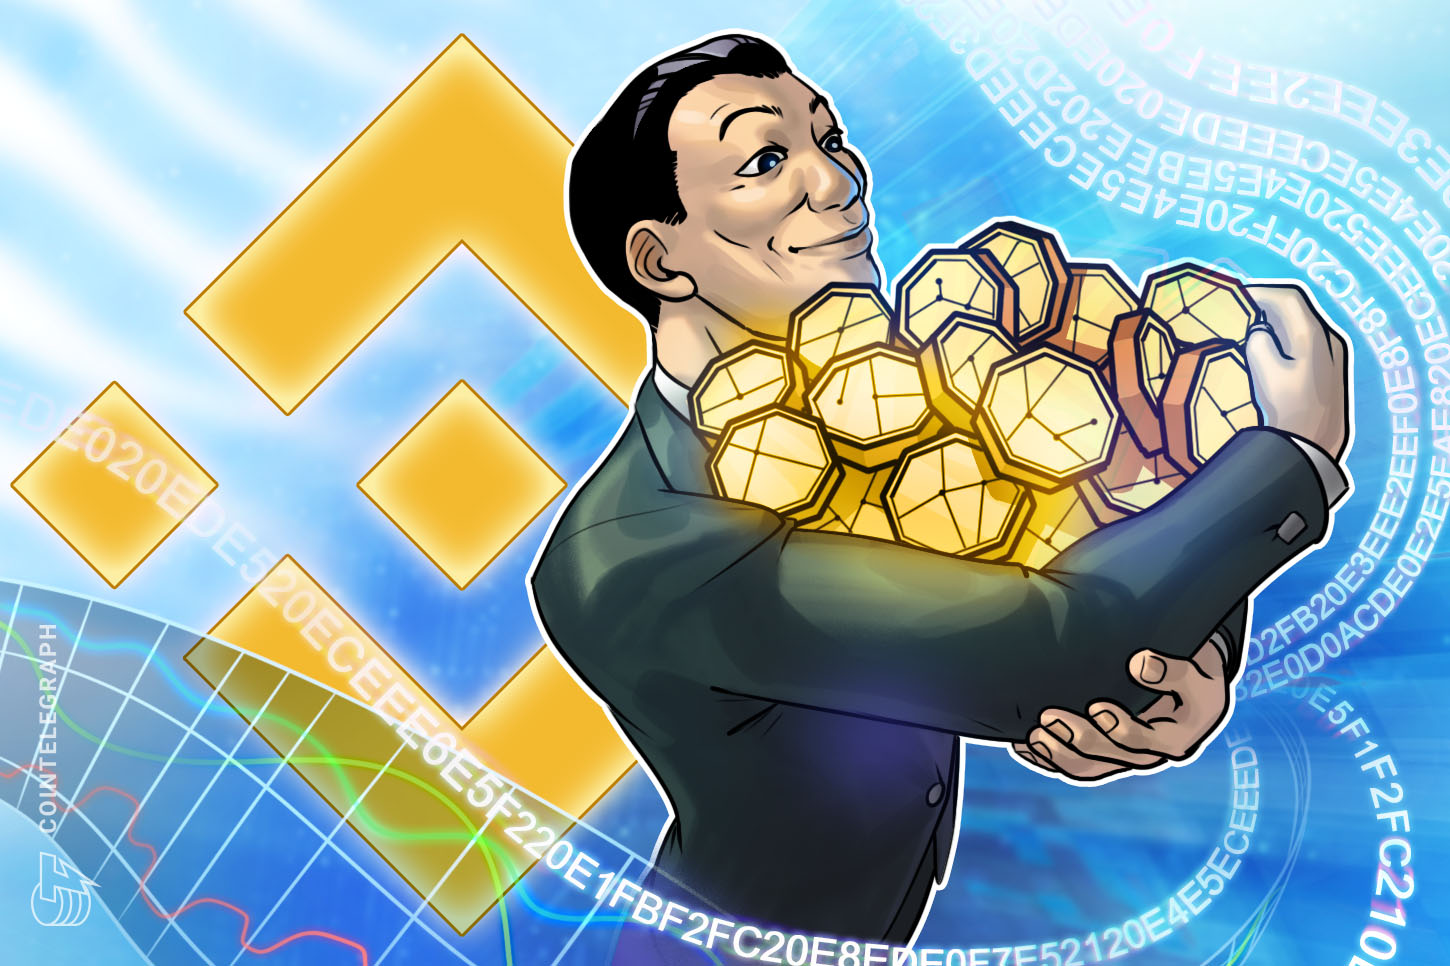 Binance Futures to limit leverage to 20x for existing users